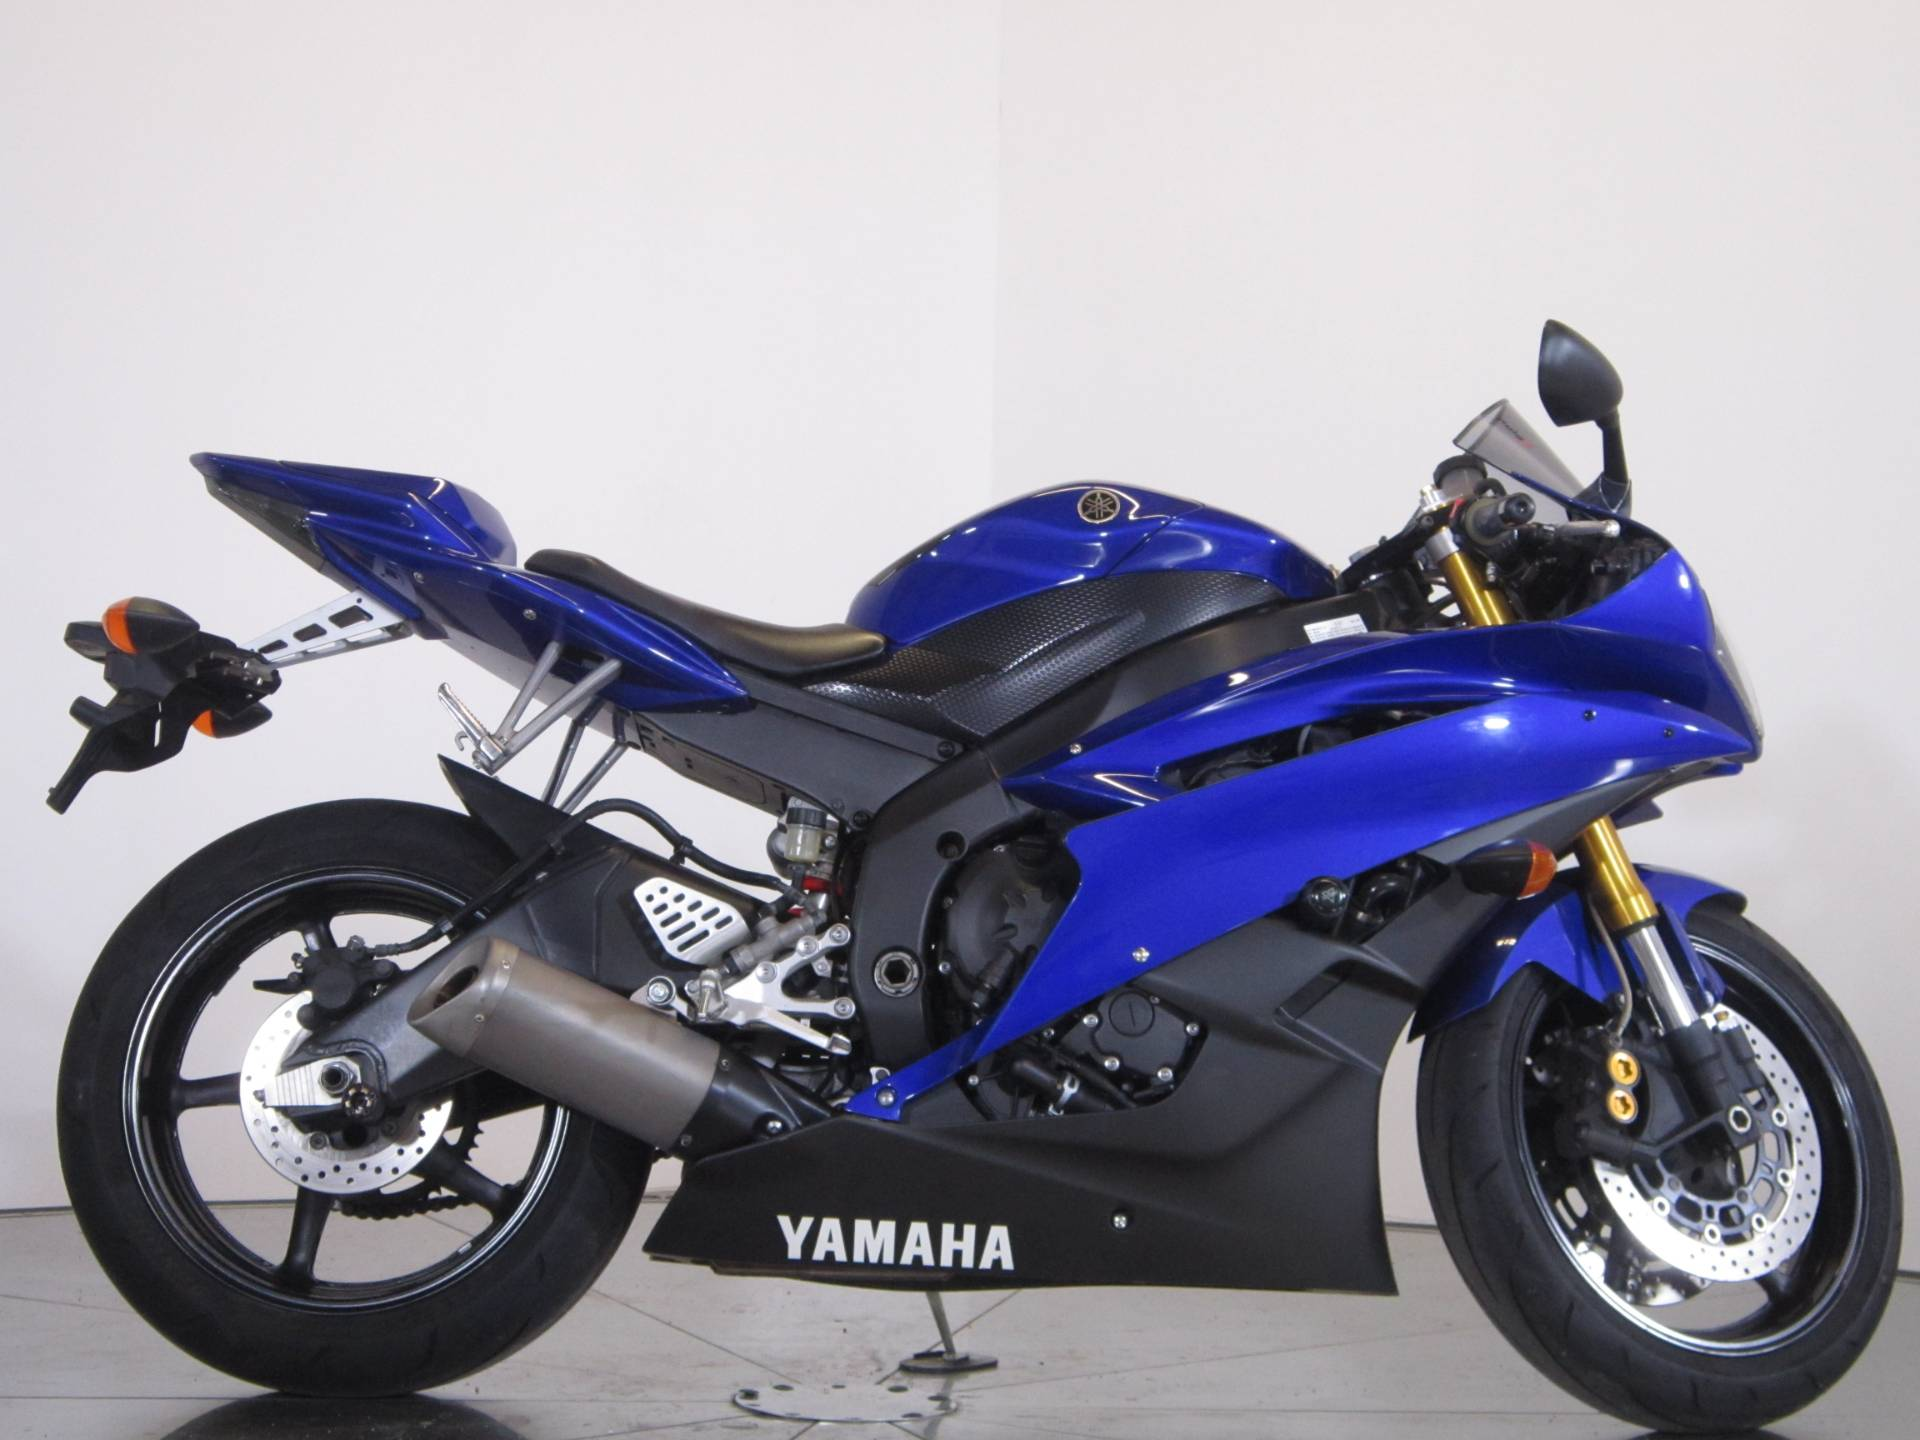 2007 Yamaha YZF-R6 for sale 106522